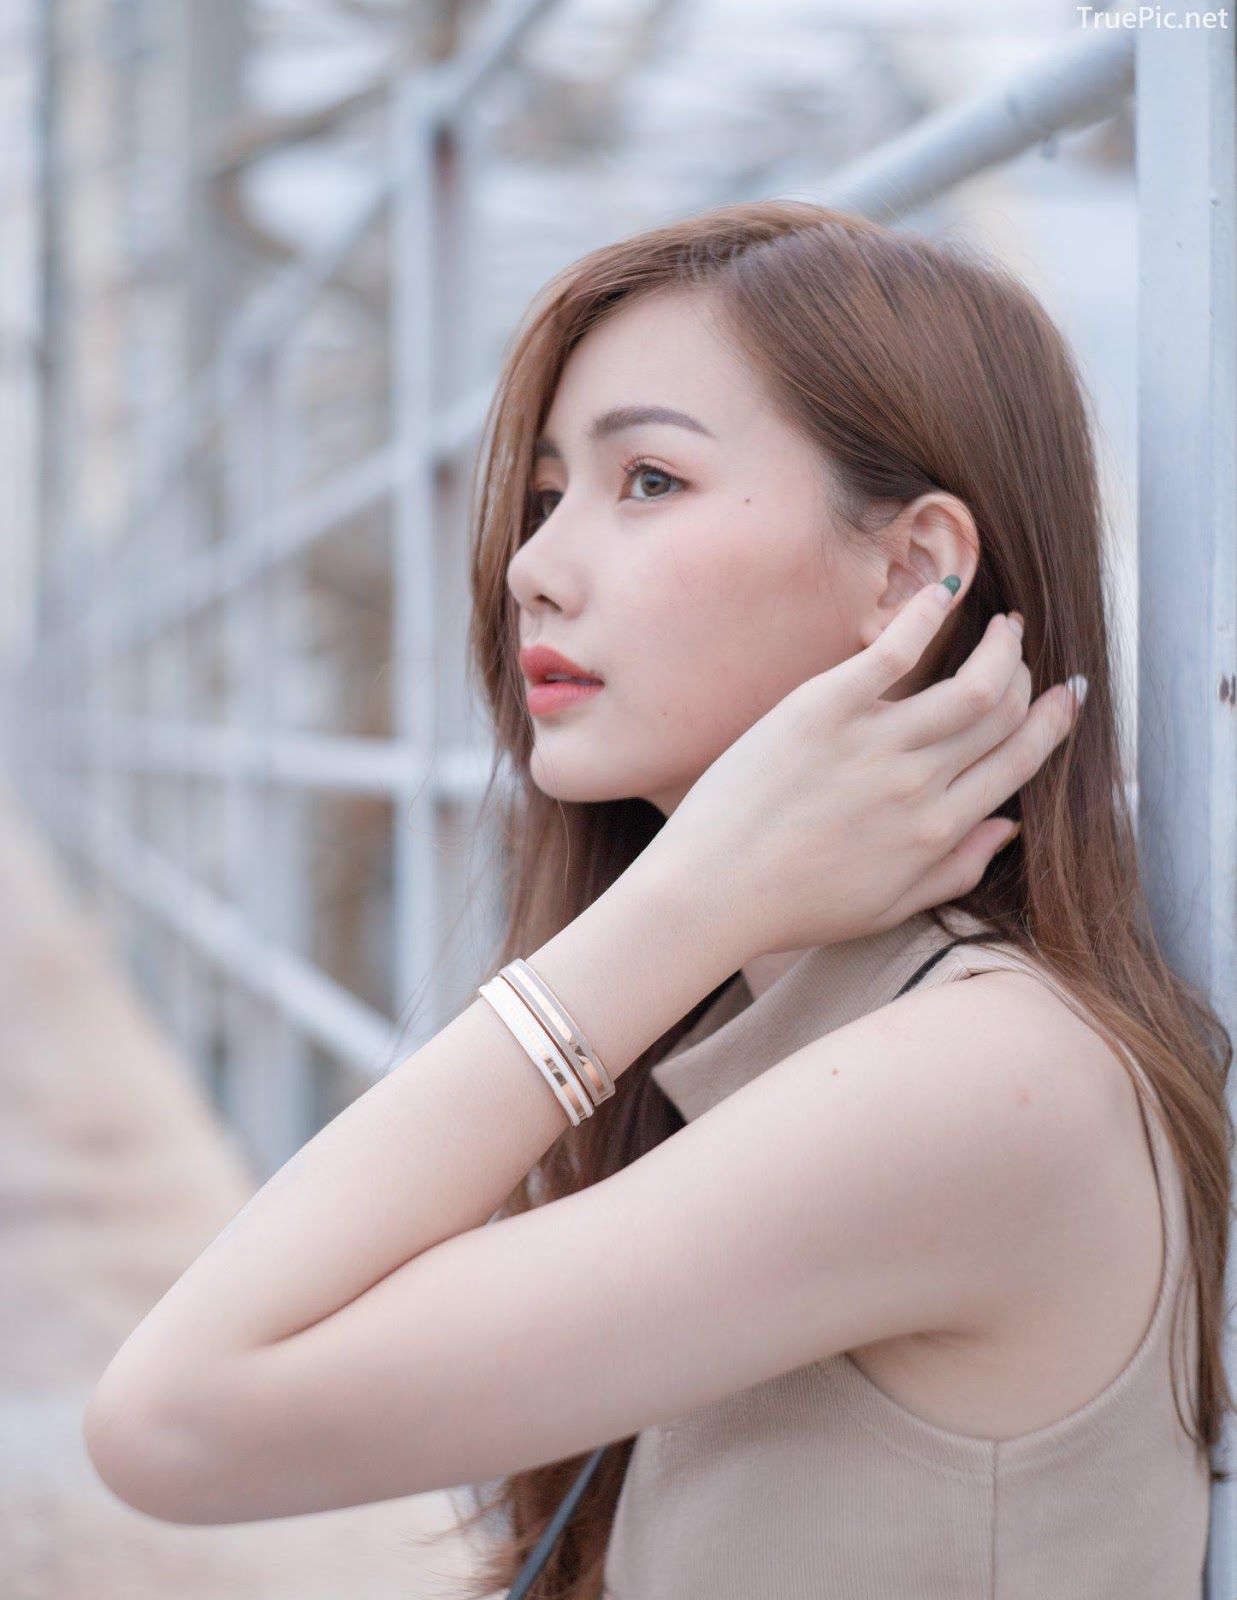 Thailand beautiful model - Pla Kewalin Udomaksorn - A beautiful morning with a cute girl - Picture 9